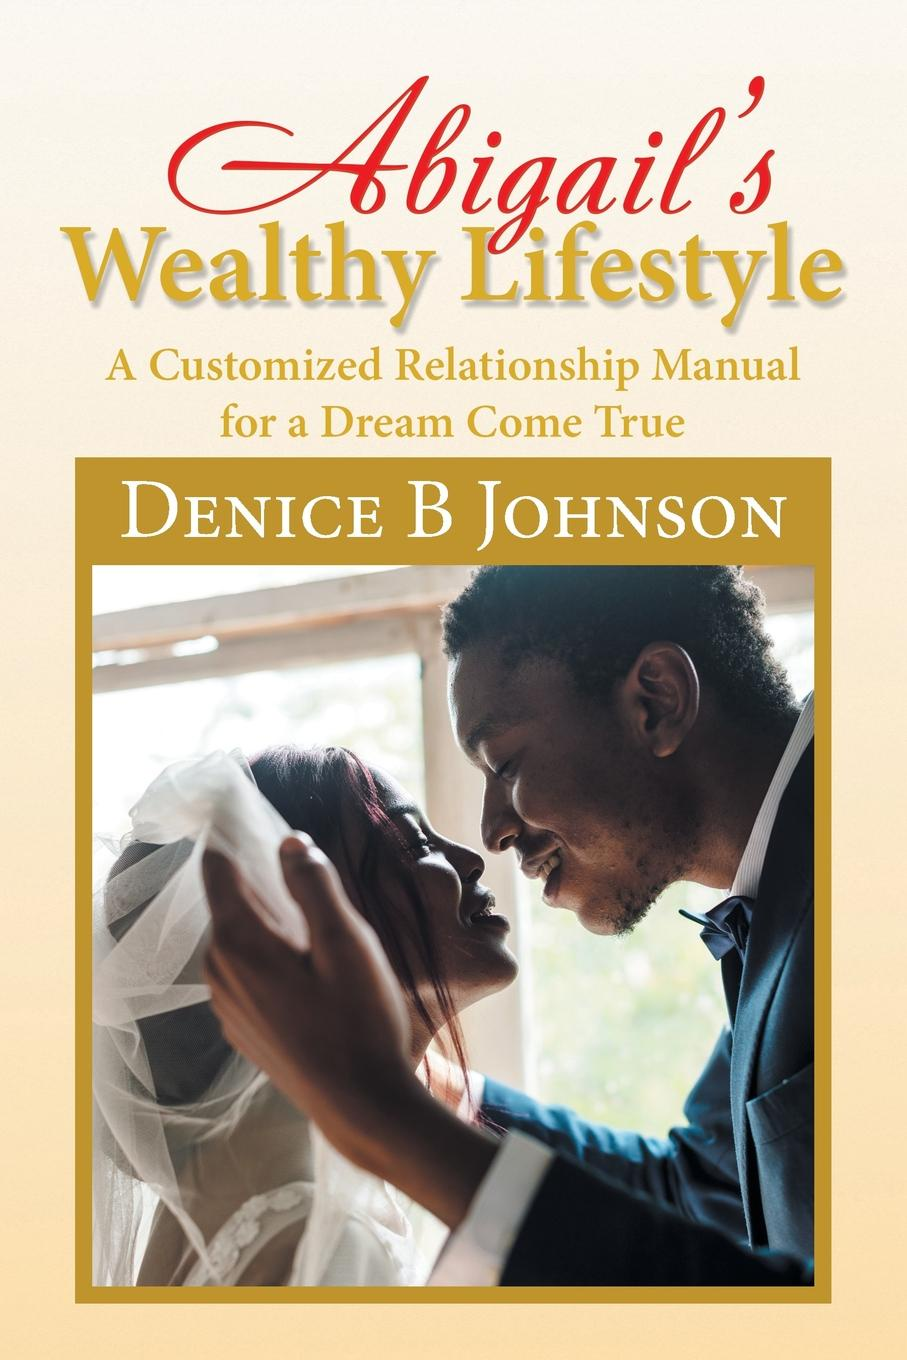 Denice Johnson Abigail.S Wealthy Lifestyle. A Customized Relationship Manual for a Dream Come True dan olweus bullying at school what we know and what we can do